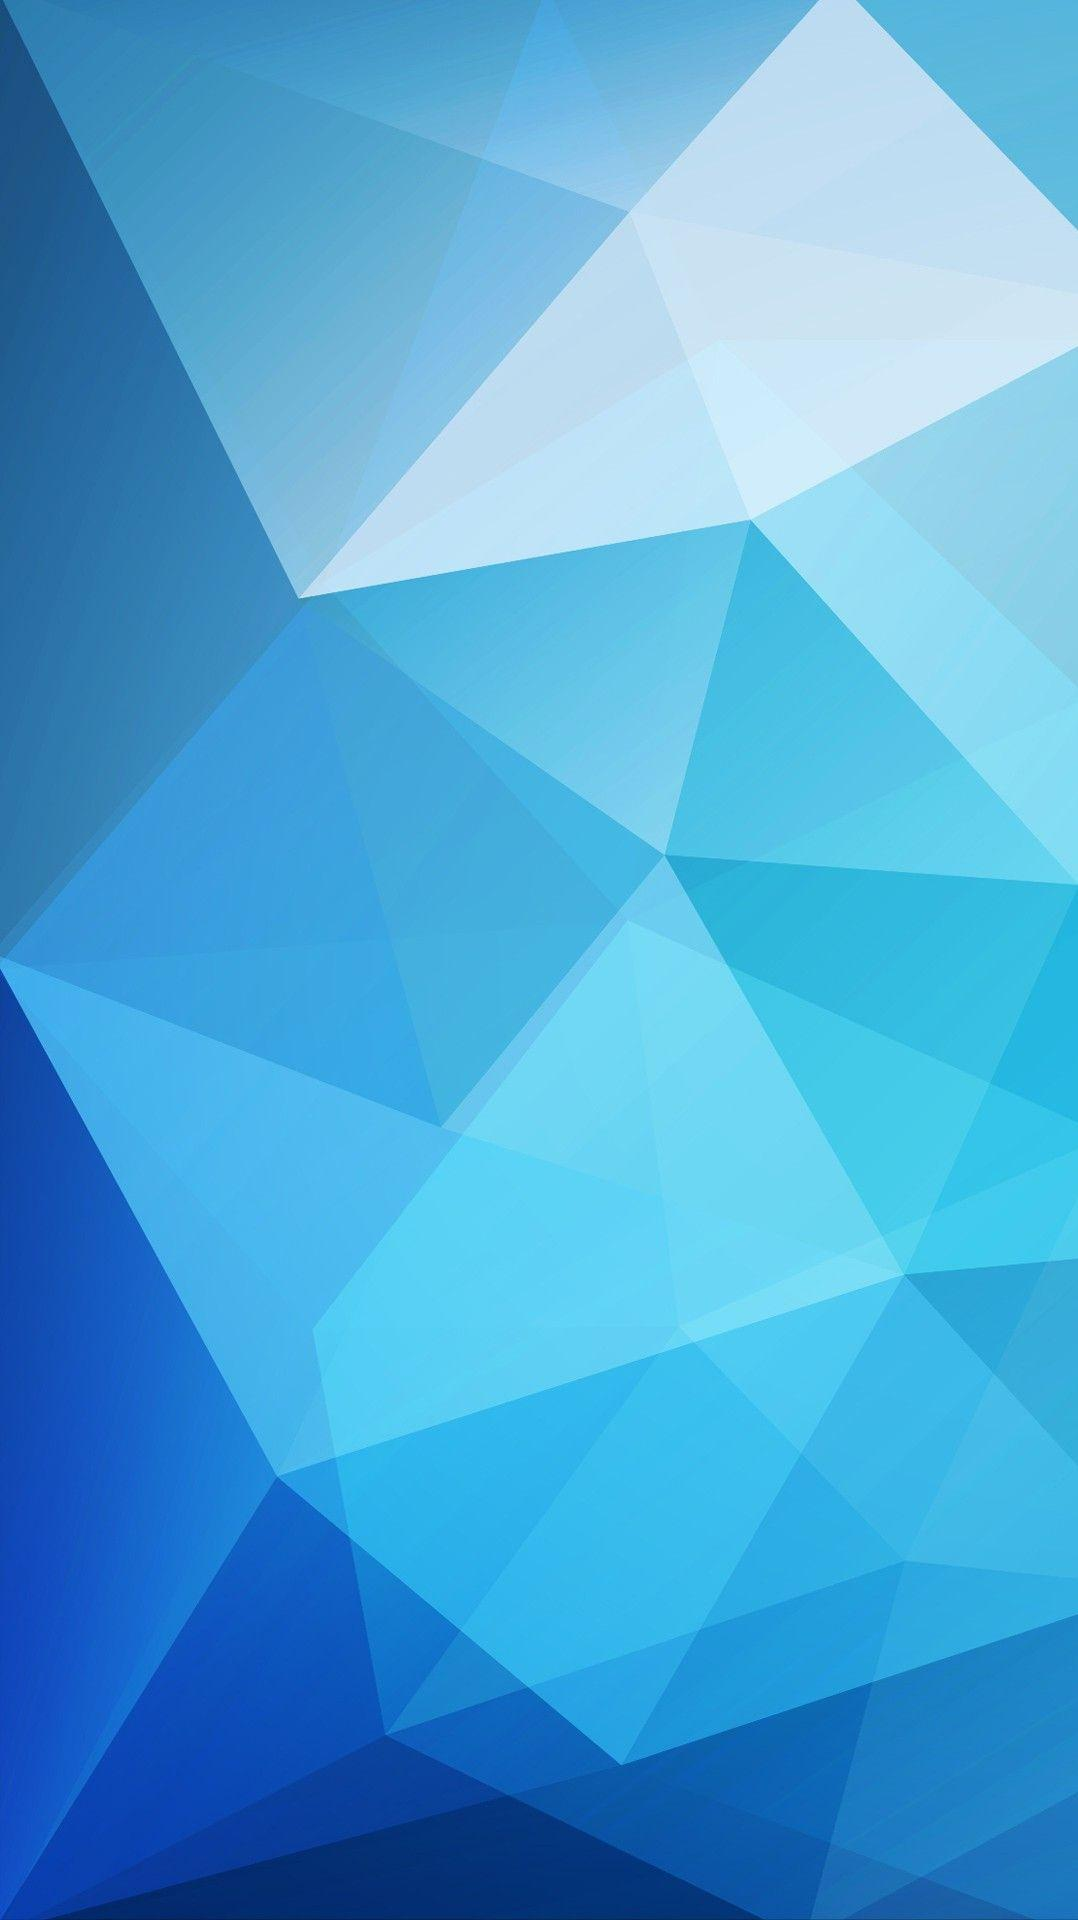 Blue Low Poly Wallpaper Iphone Wallpaper Iphone Wallpapers